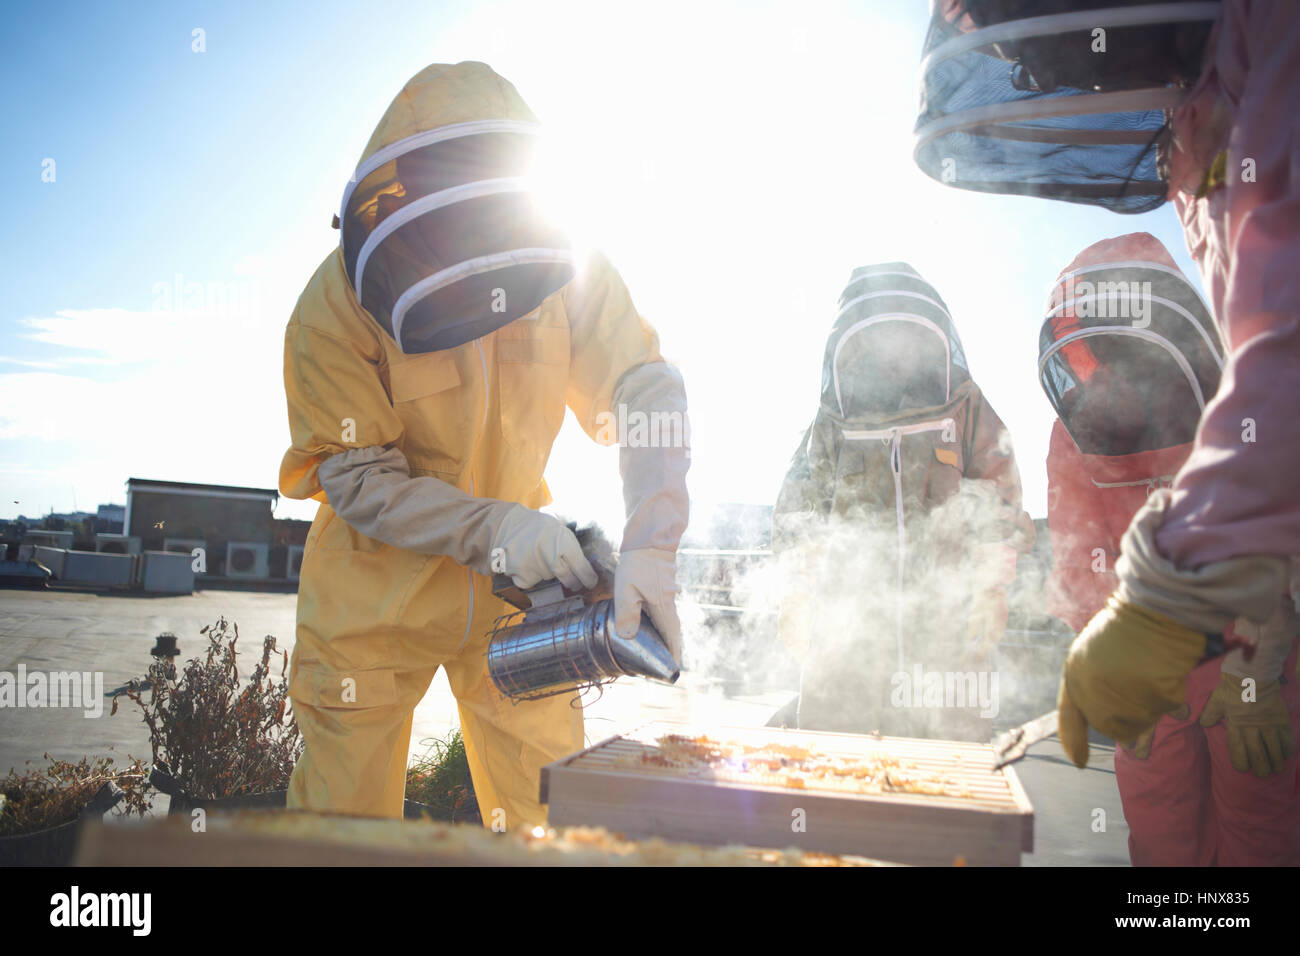 Male and female beekeepers using bee smoker on city rooftop - Stock Image